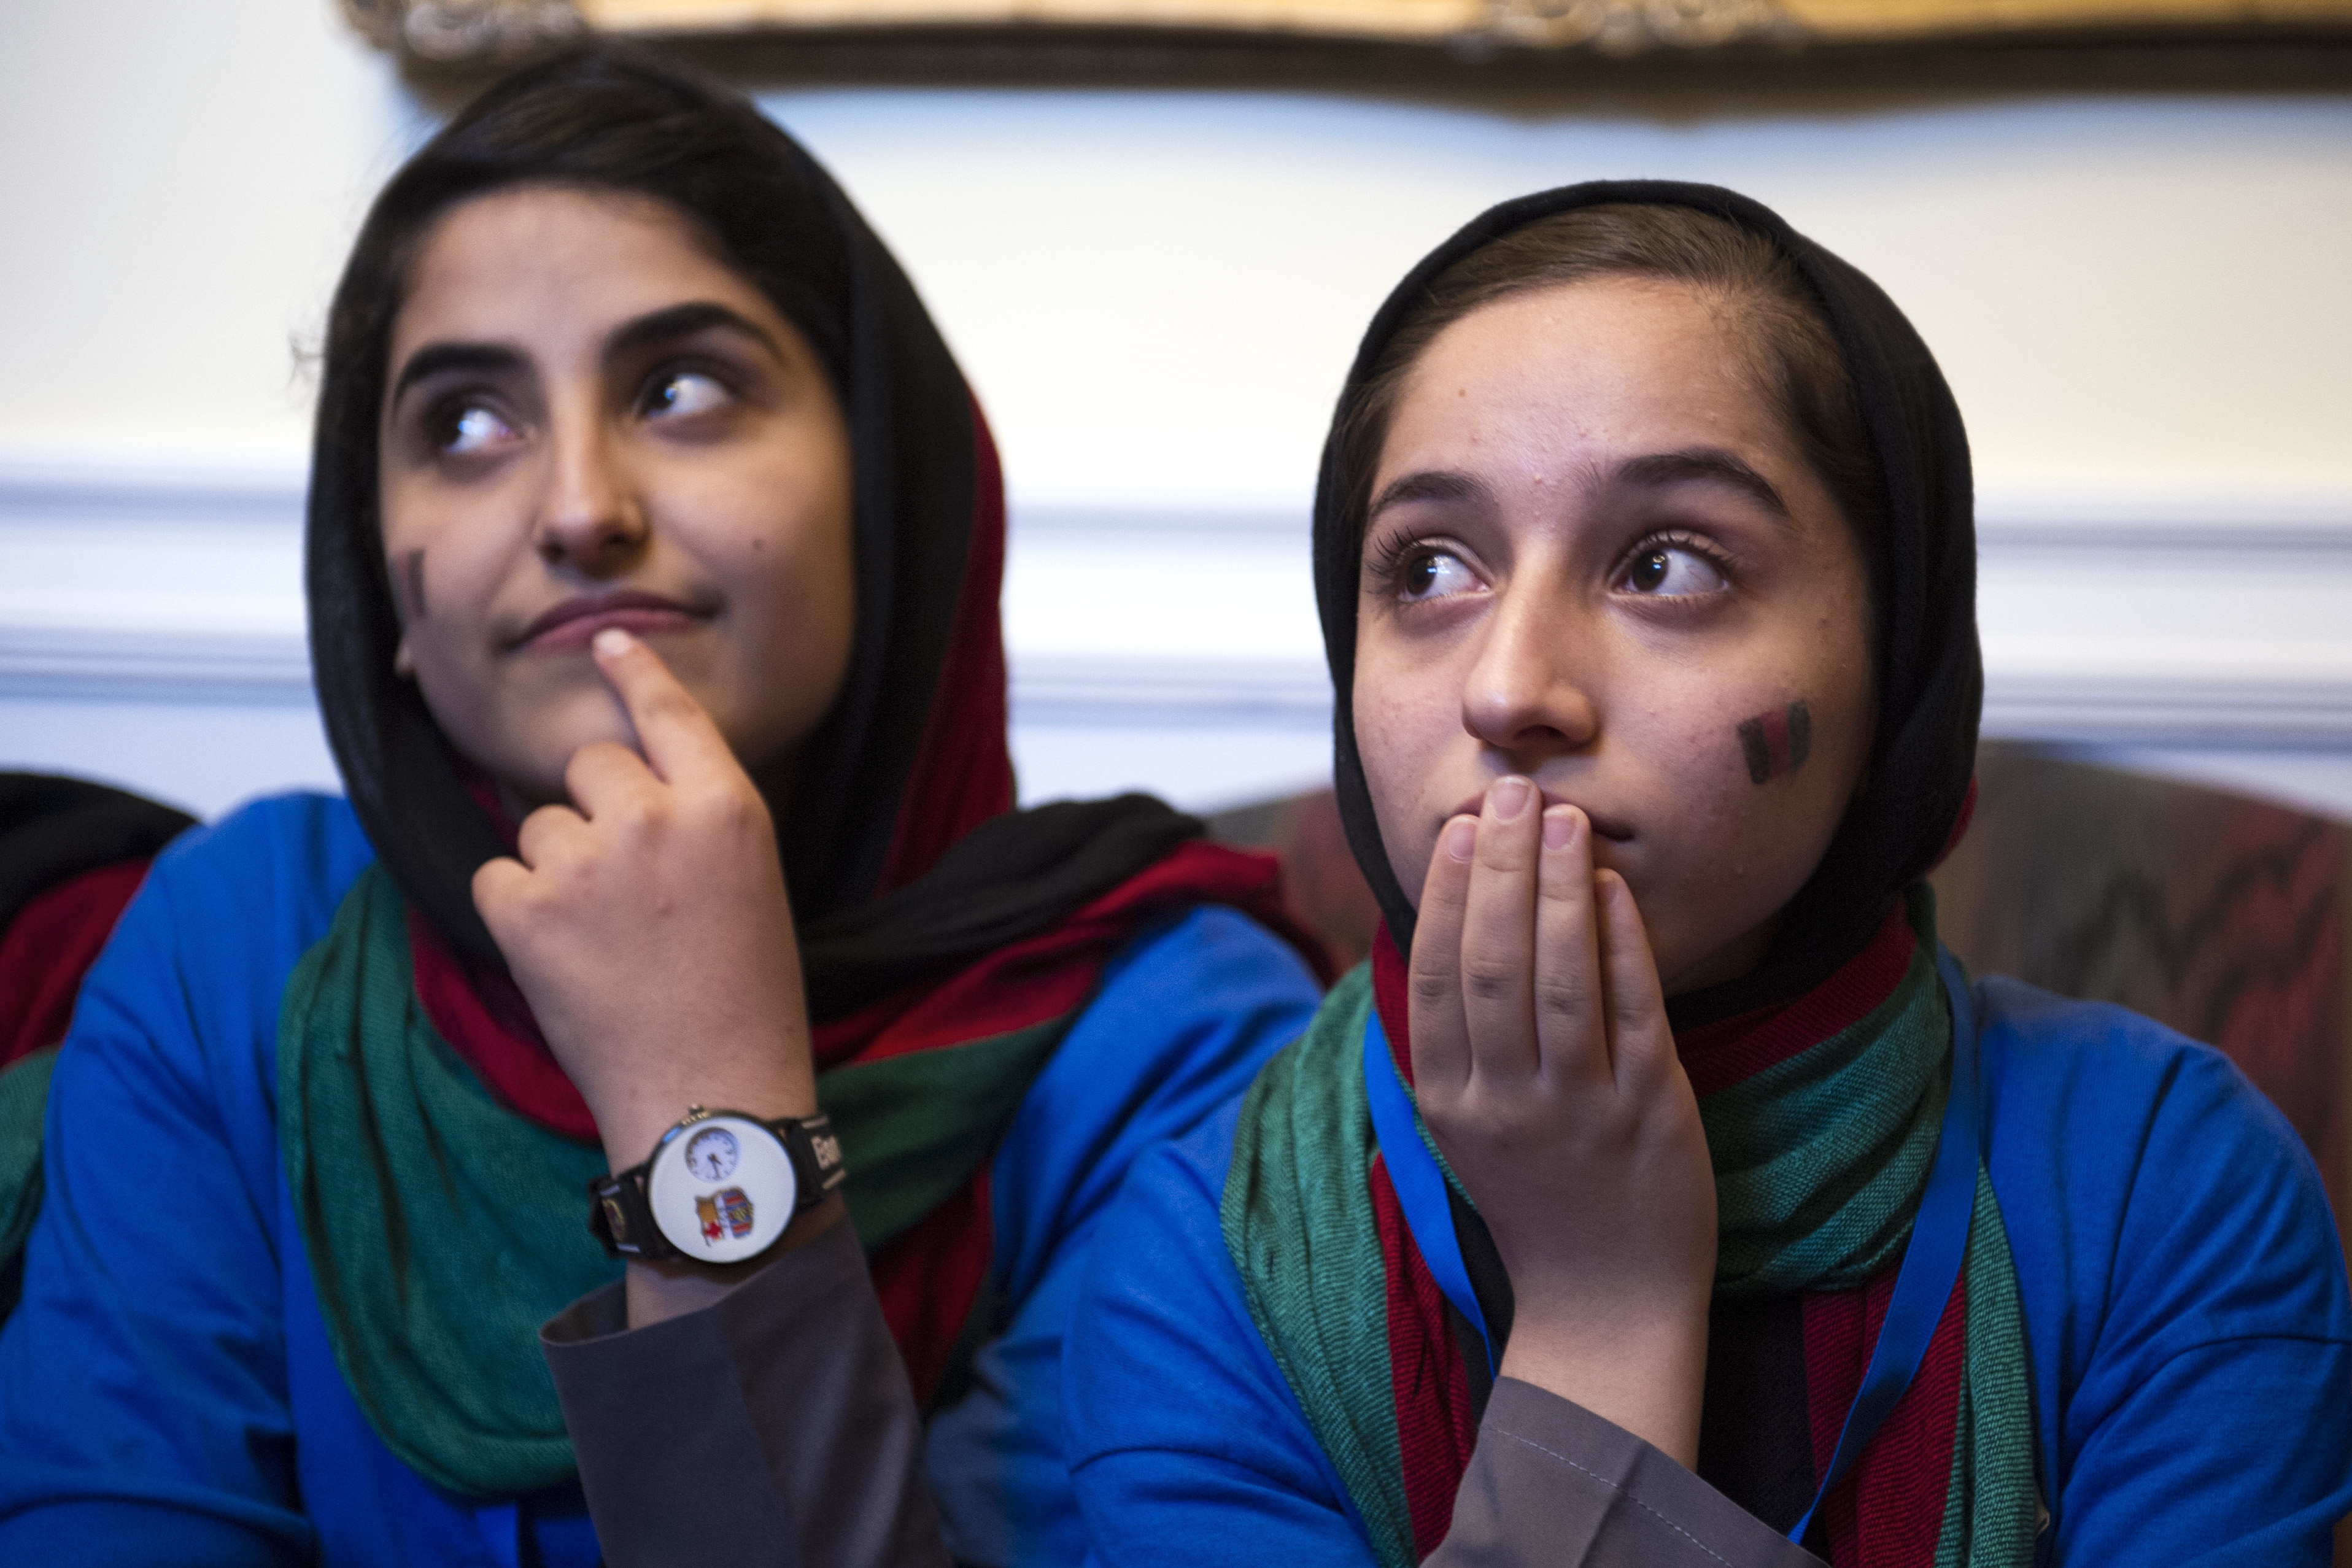 Afghanistan's FIRST Global Challenge team member Lida Azizi, left, and Fatemah Qaderyan meet with reporters following the opening ceremony in Washington, Sunday, July 16, 2017. Twice rejected for U.S. visas, the all-girls robotics team arrived in Washington on Saturday and will compete against entrants from more than 150 countries in the three-day high school competition. It's the first annual robotics competition designed to encourage youths to pursue careers in math and science. (AP Photo/Cliff Owen)